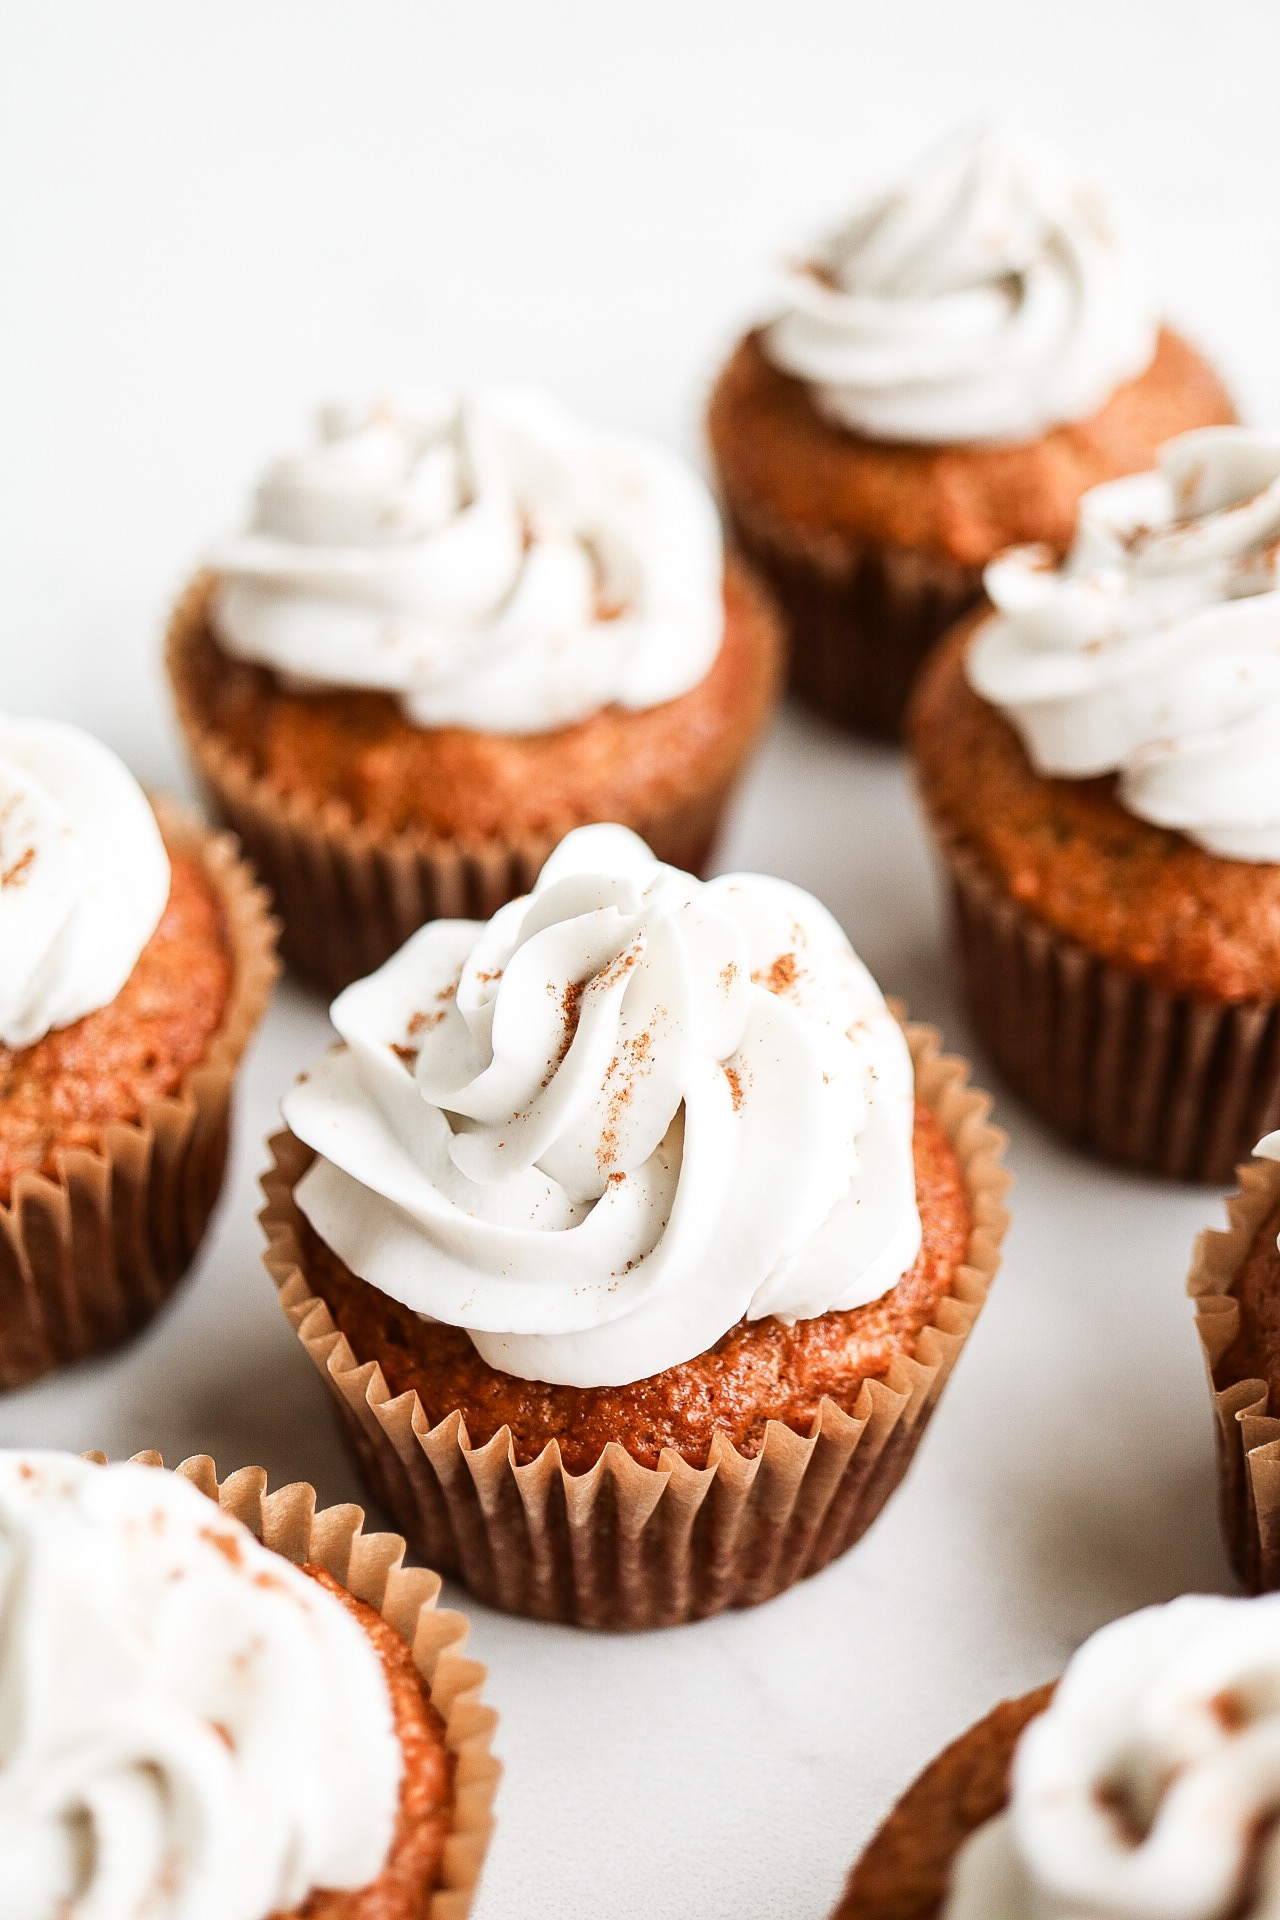 Pipe your frosting and sprinkle with a dash of cinnamon!